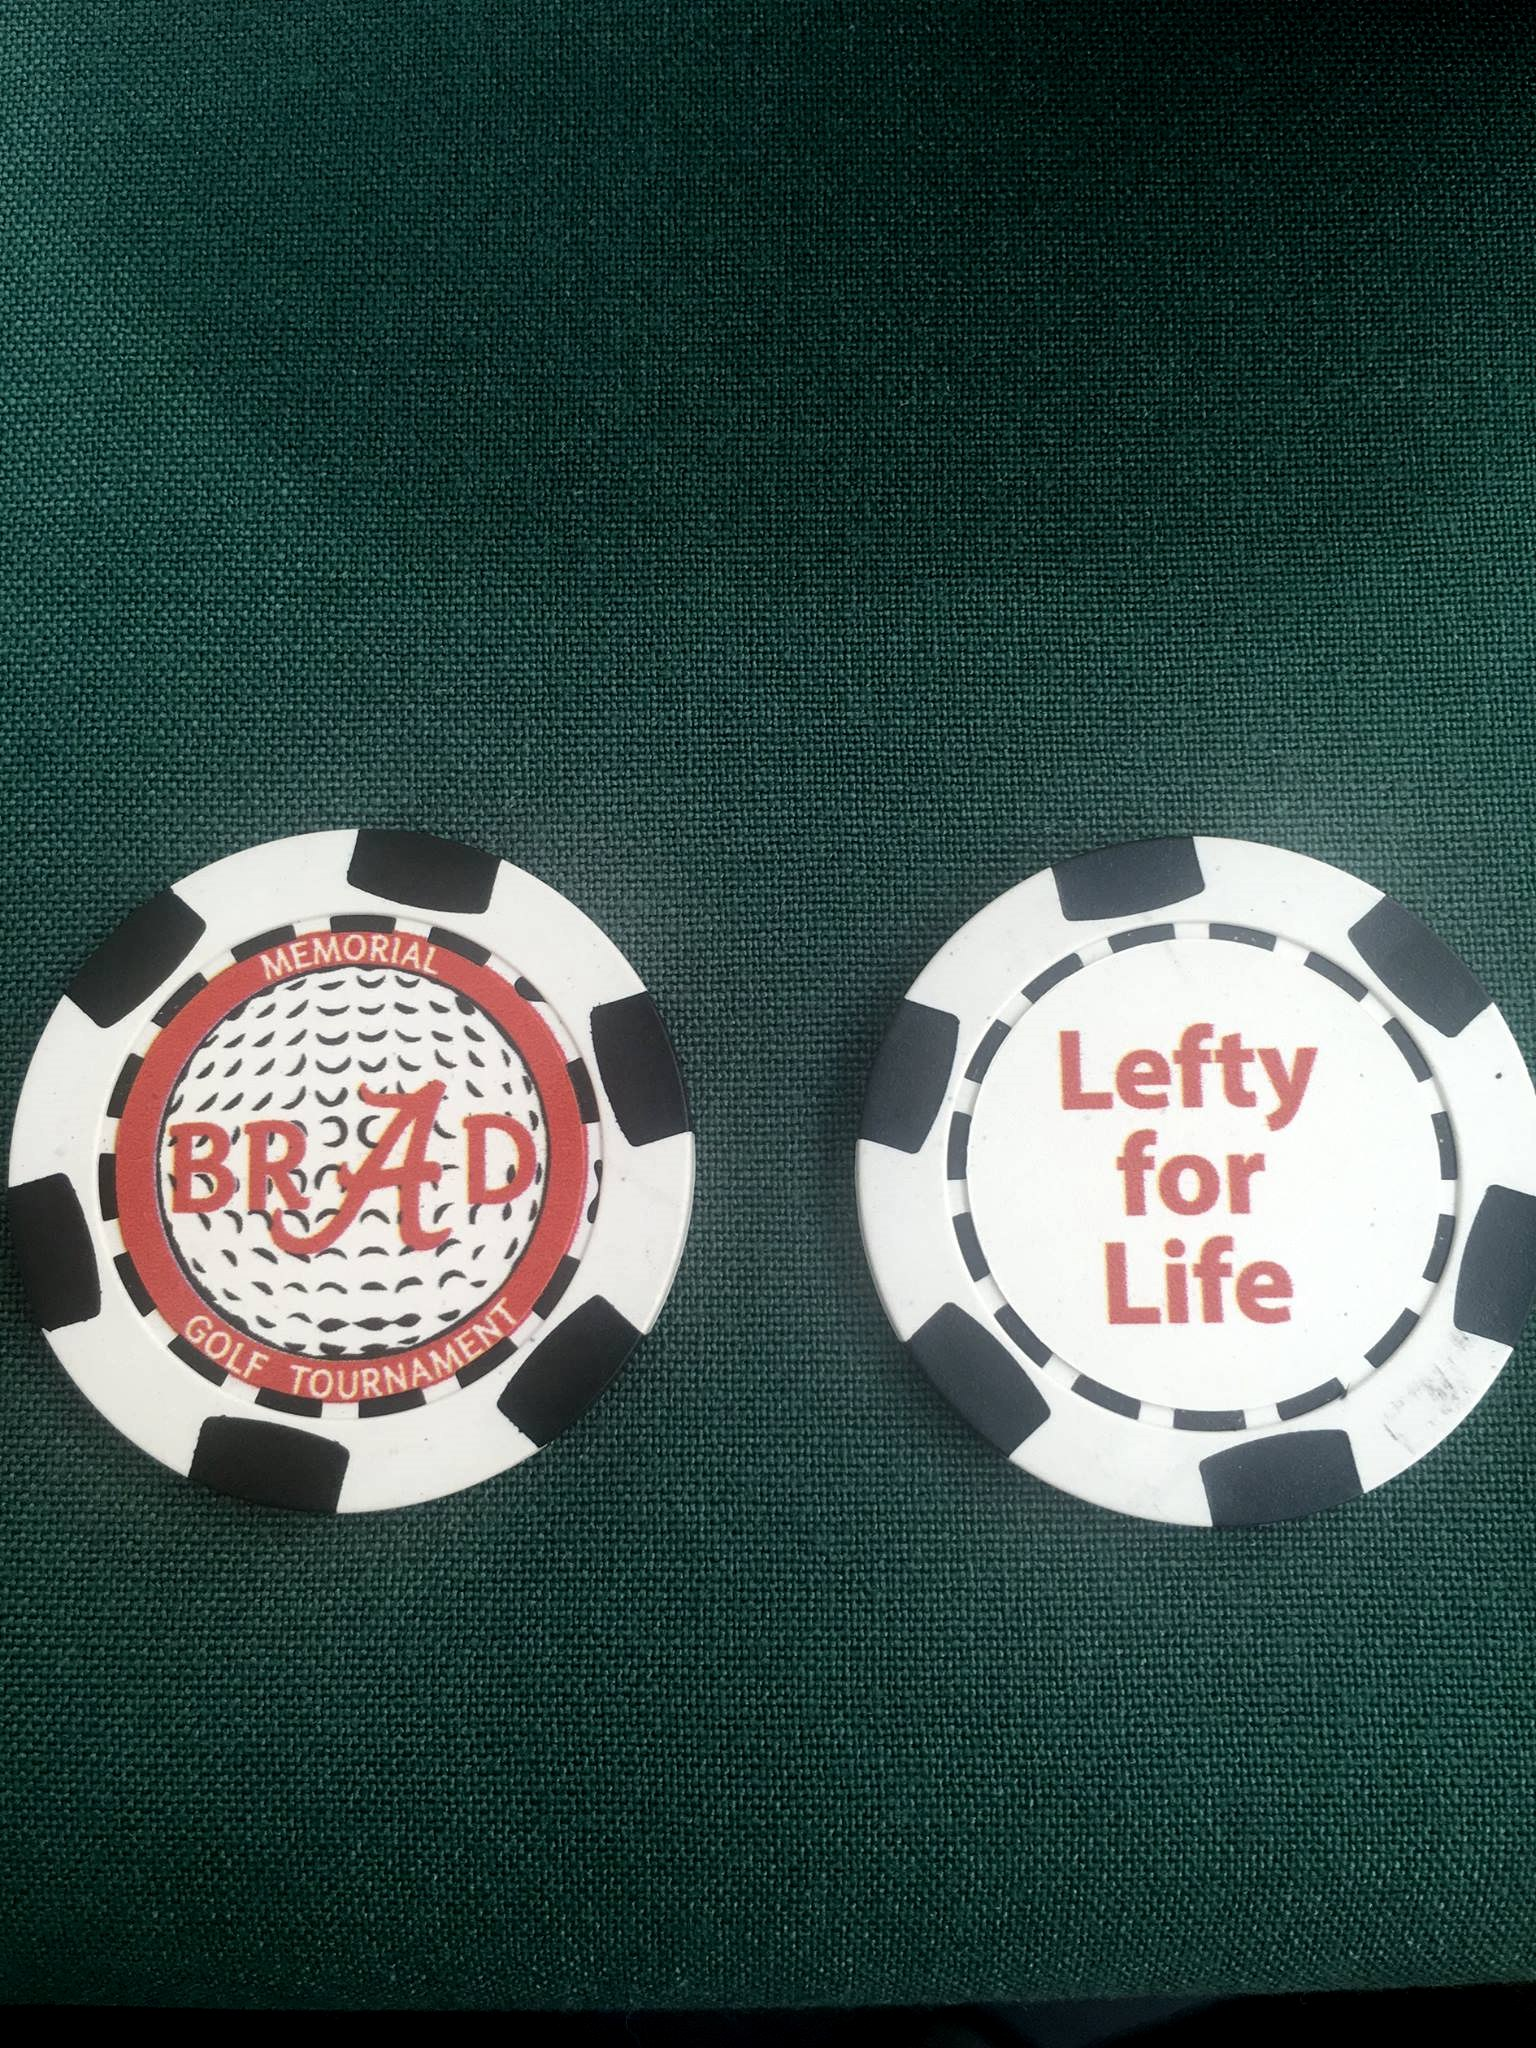 lefty for life chips